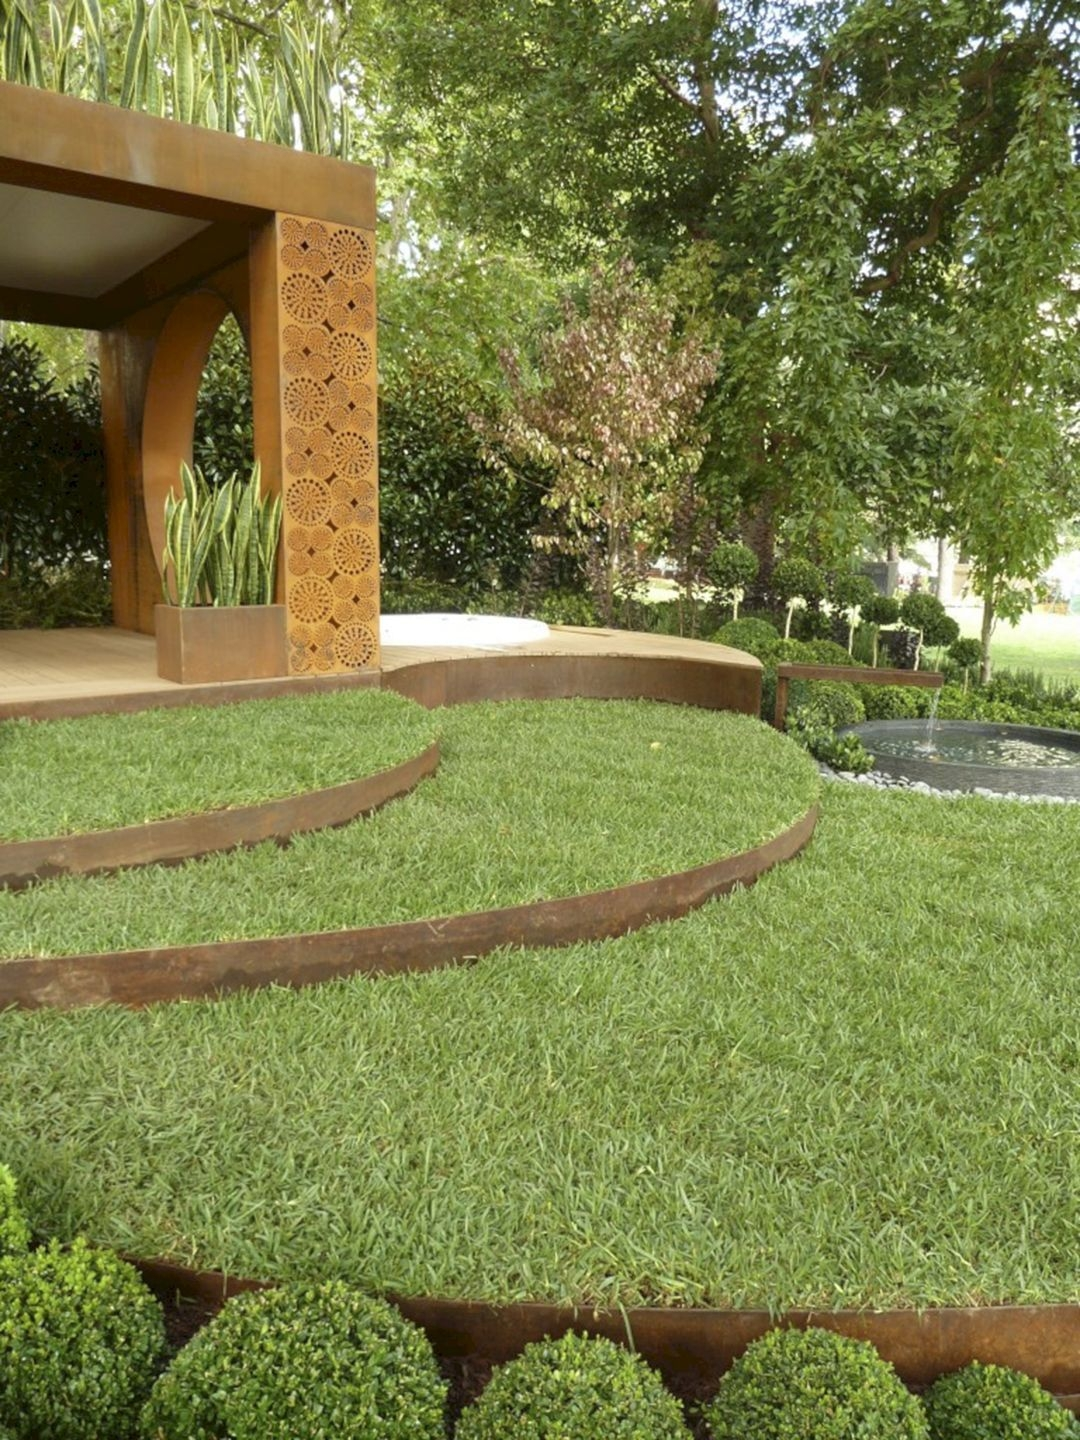 Pretty Lawn Edging Design Ideas For Your Yard To Try 23